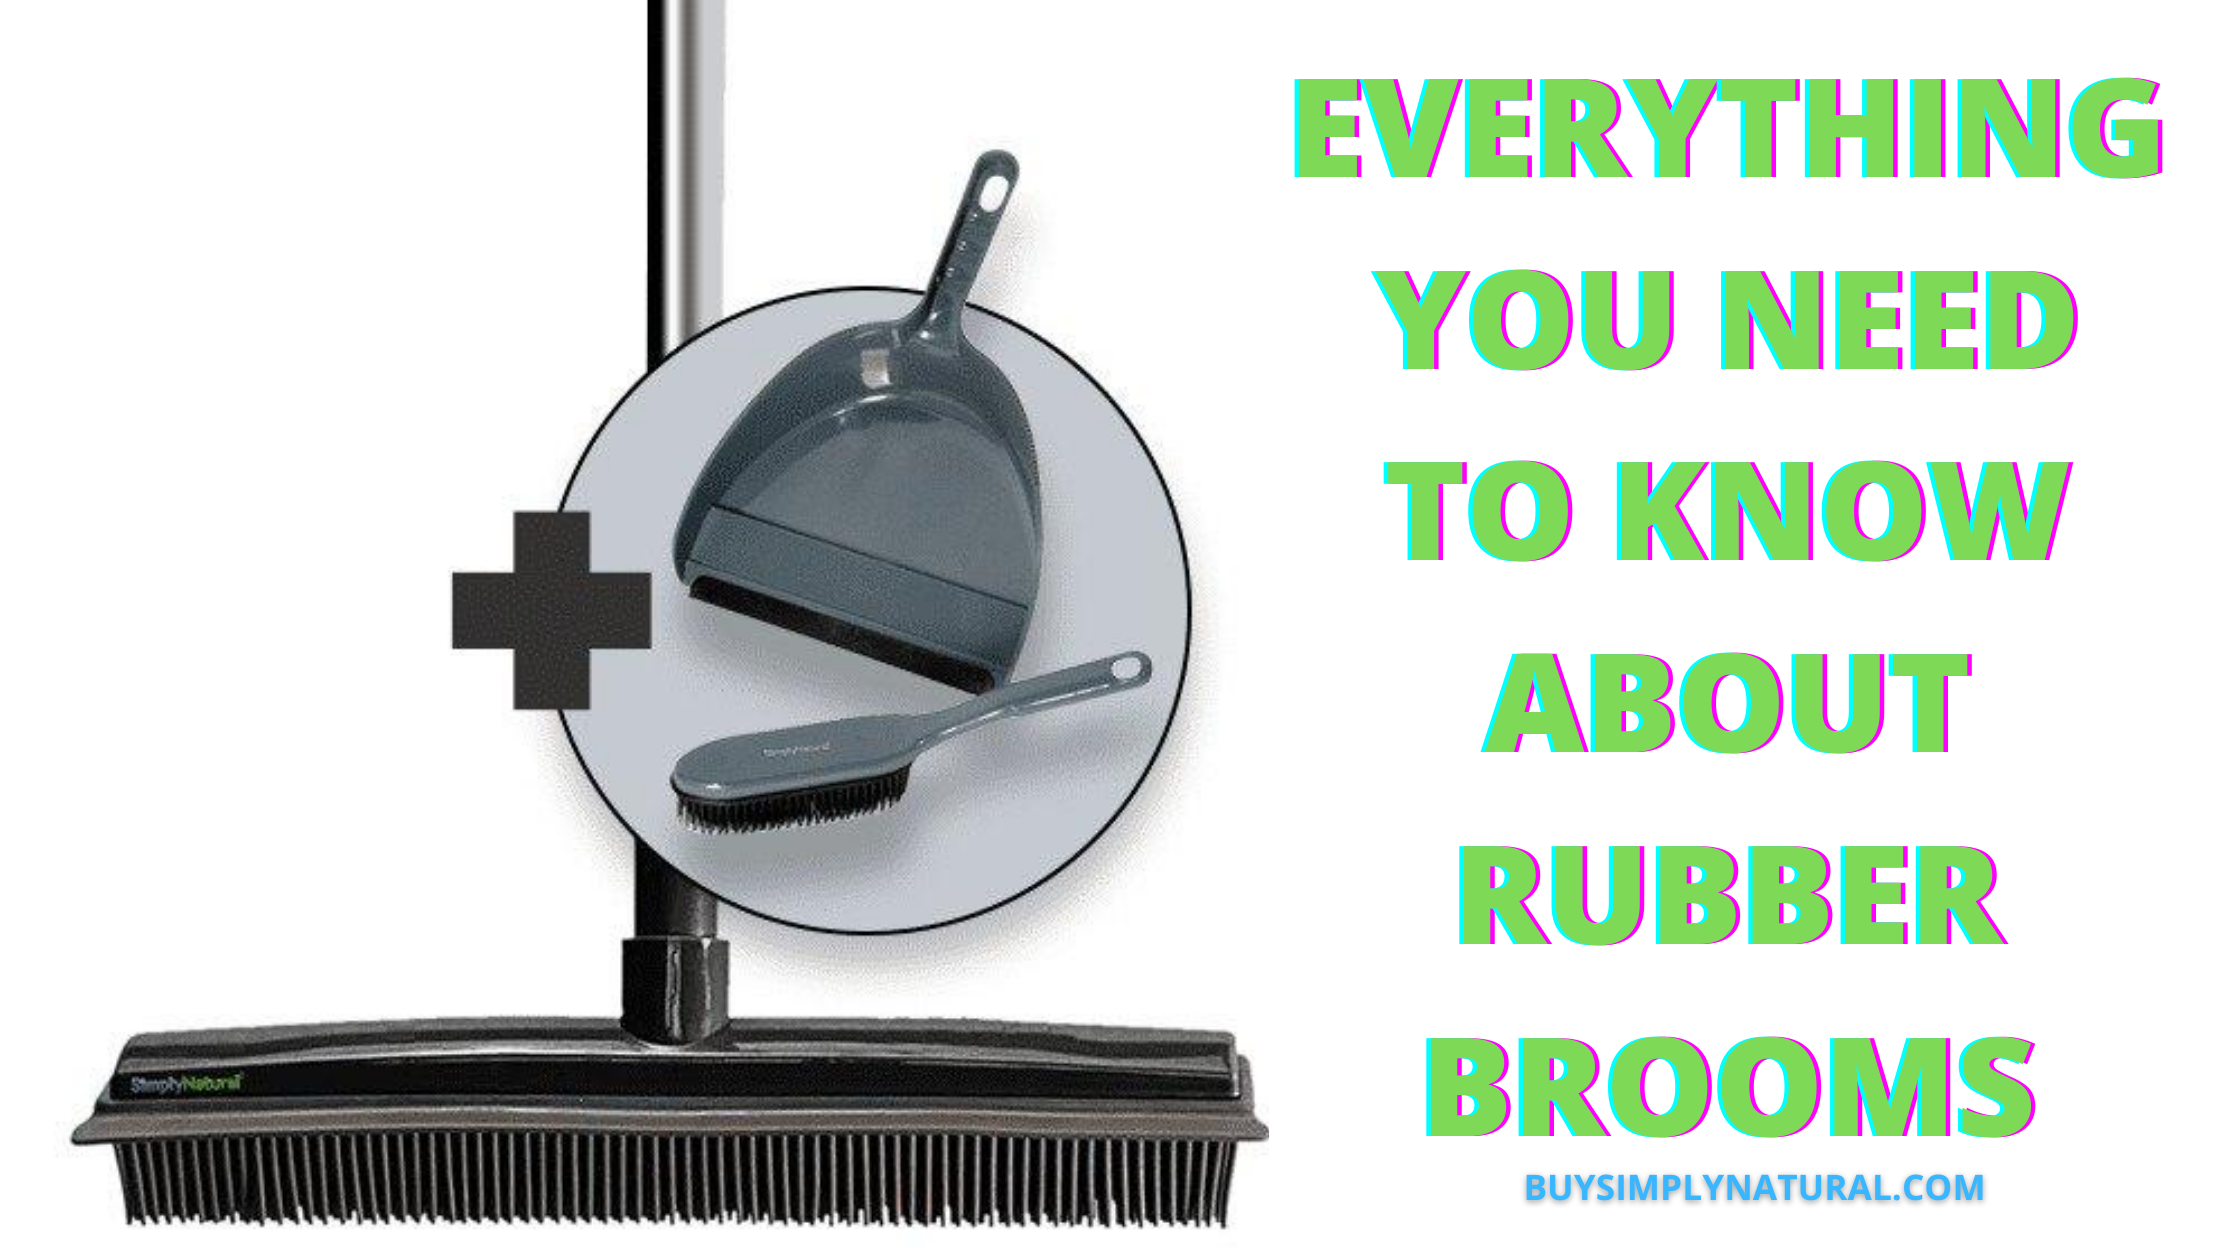 EVERYTHING YOU NEED TO KNOW ABOUT RUBBER BROOMS